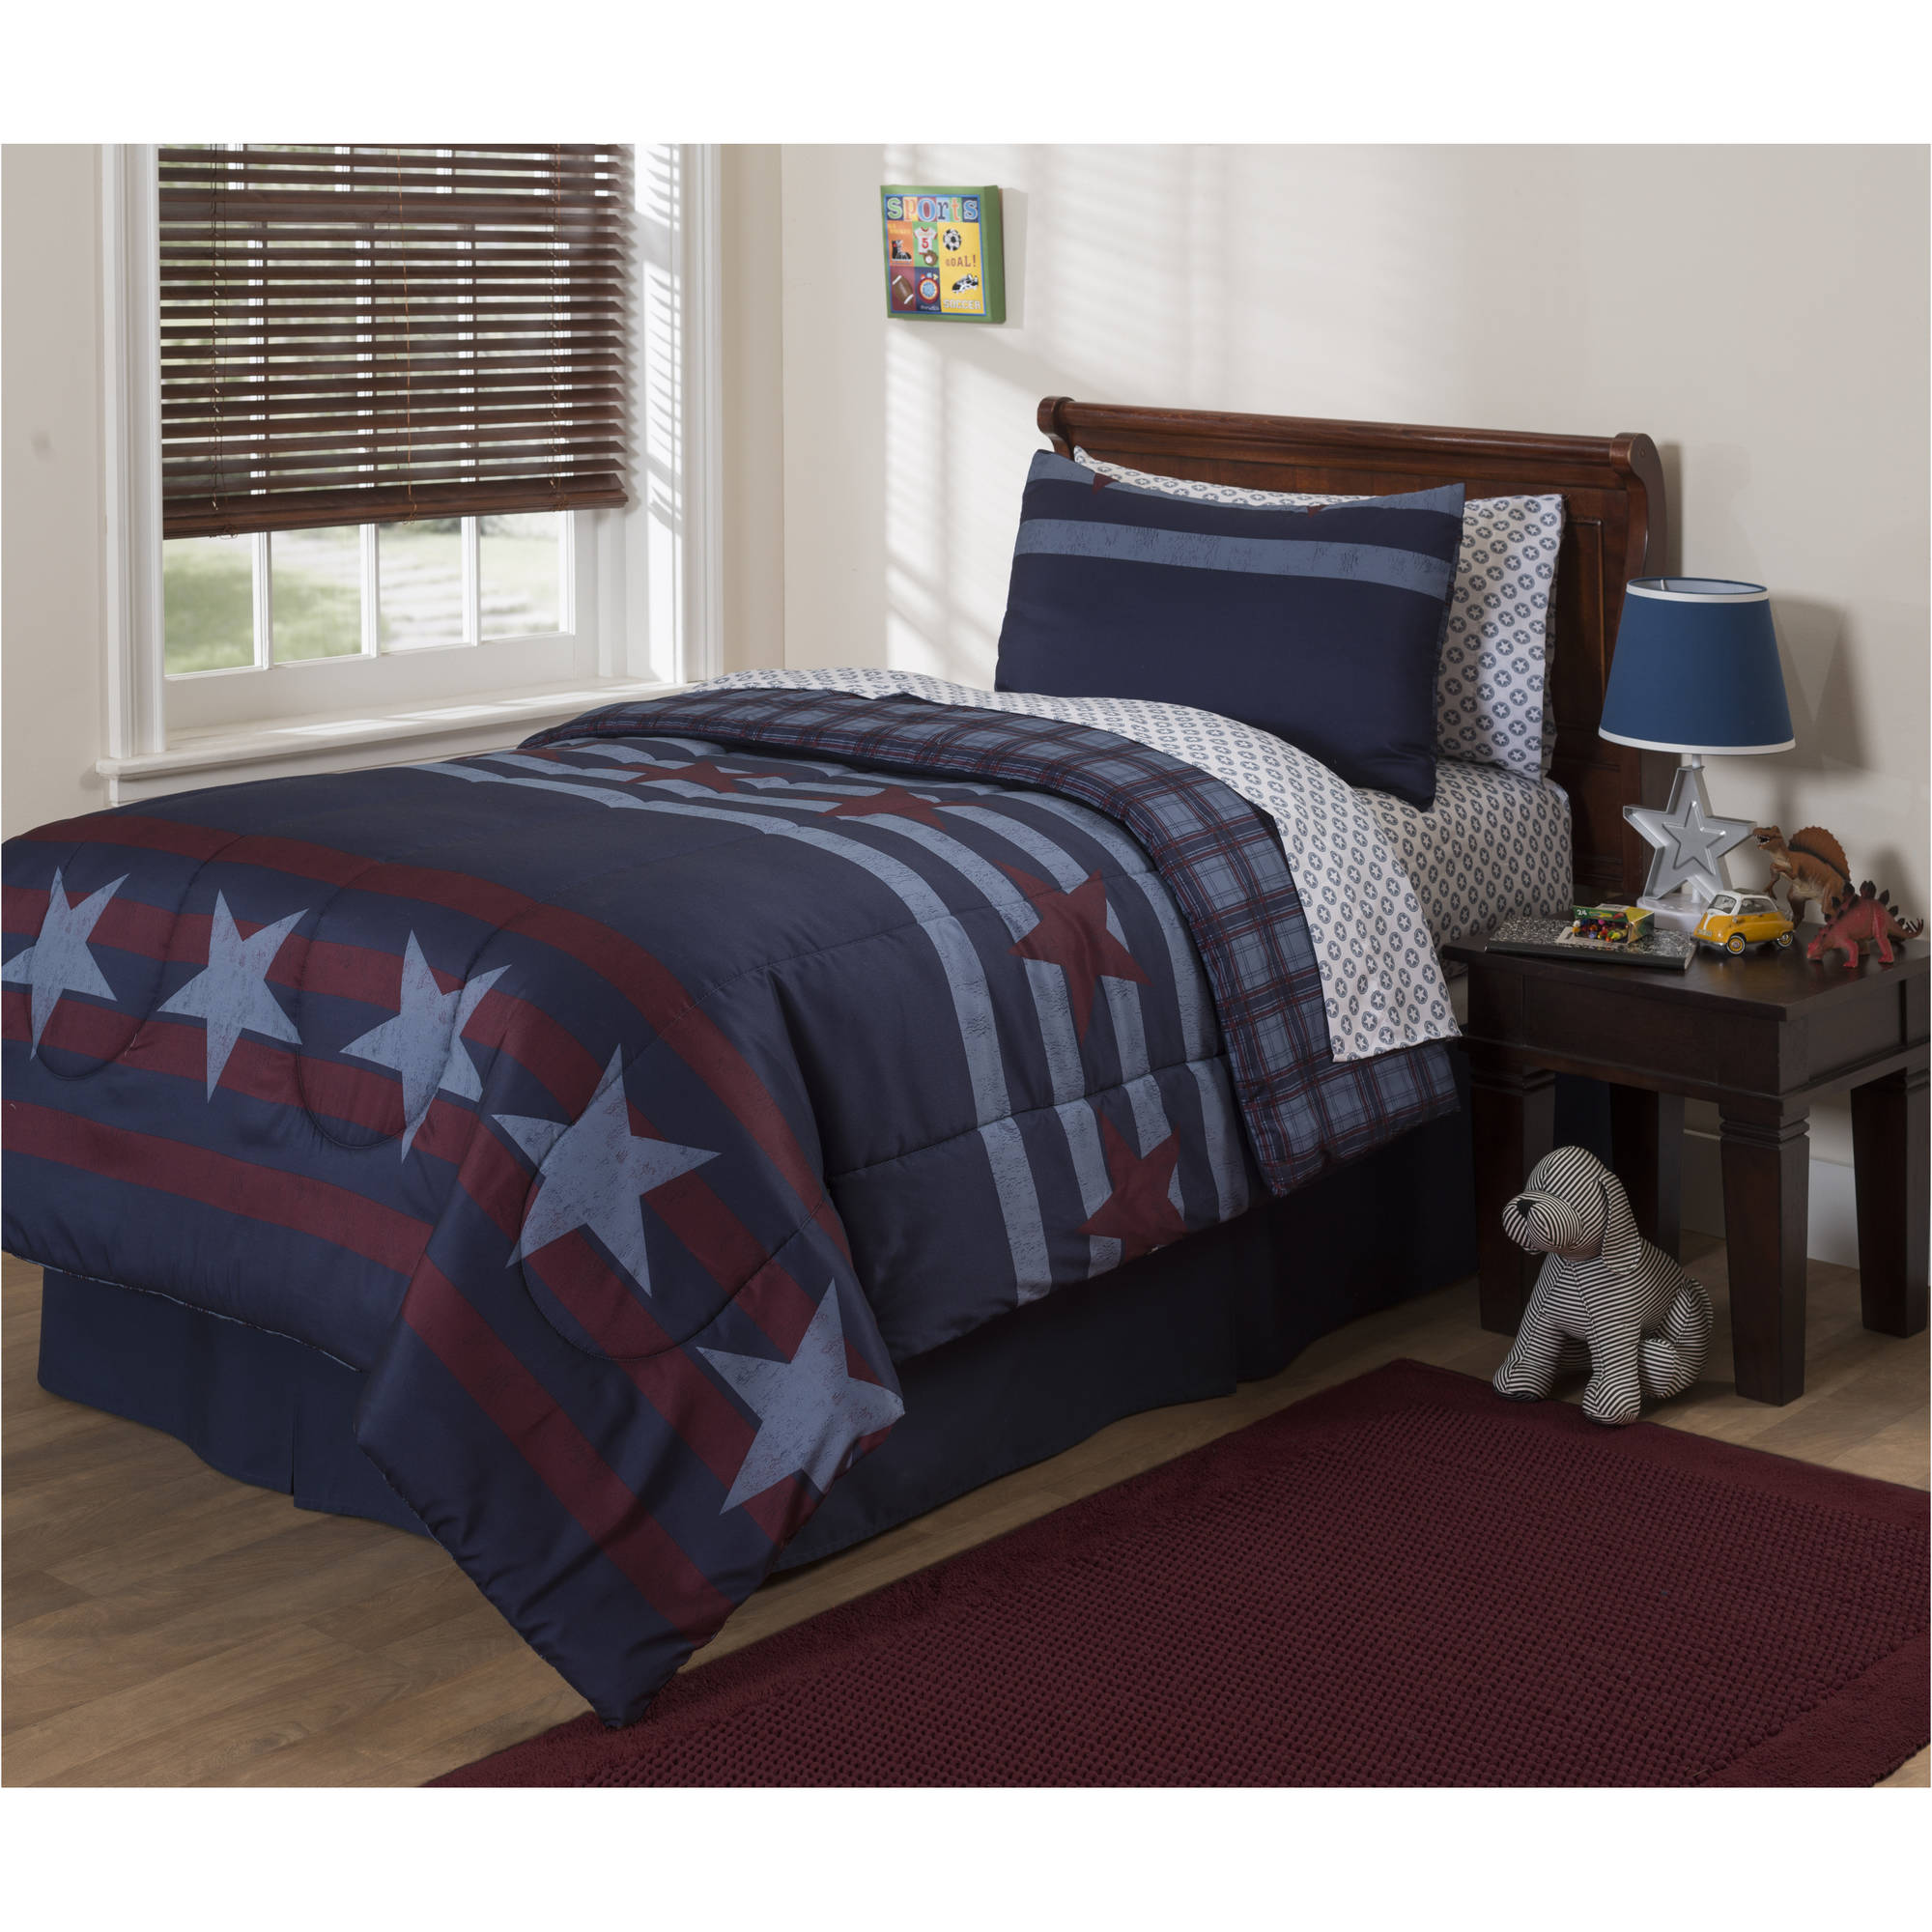 Mainstays Kids Stars And Stripes 5-Piece Bed in a Bag Bedding Set by Idea Nuova